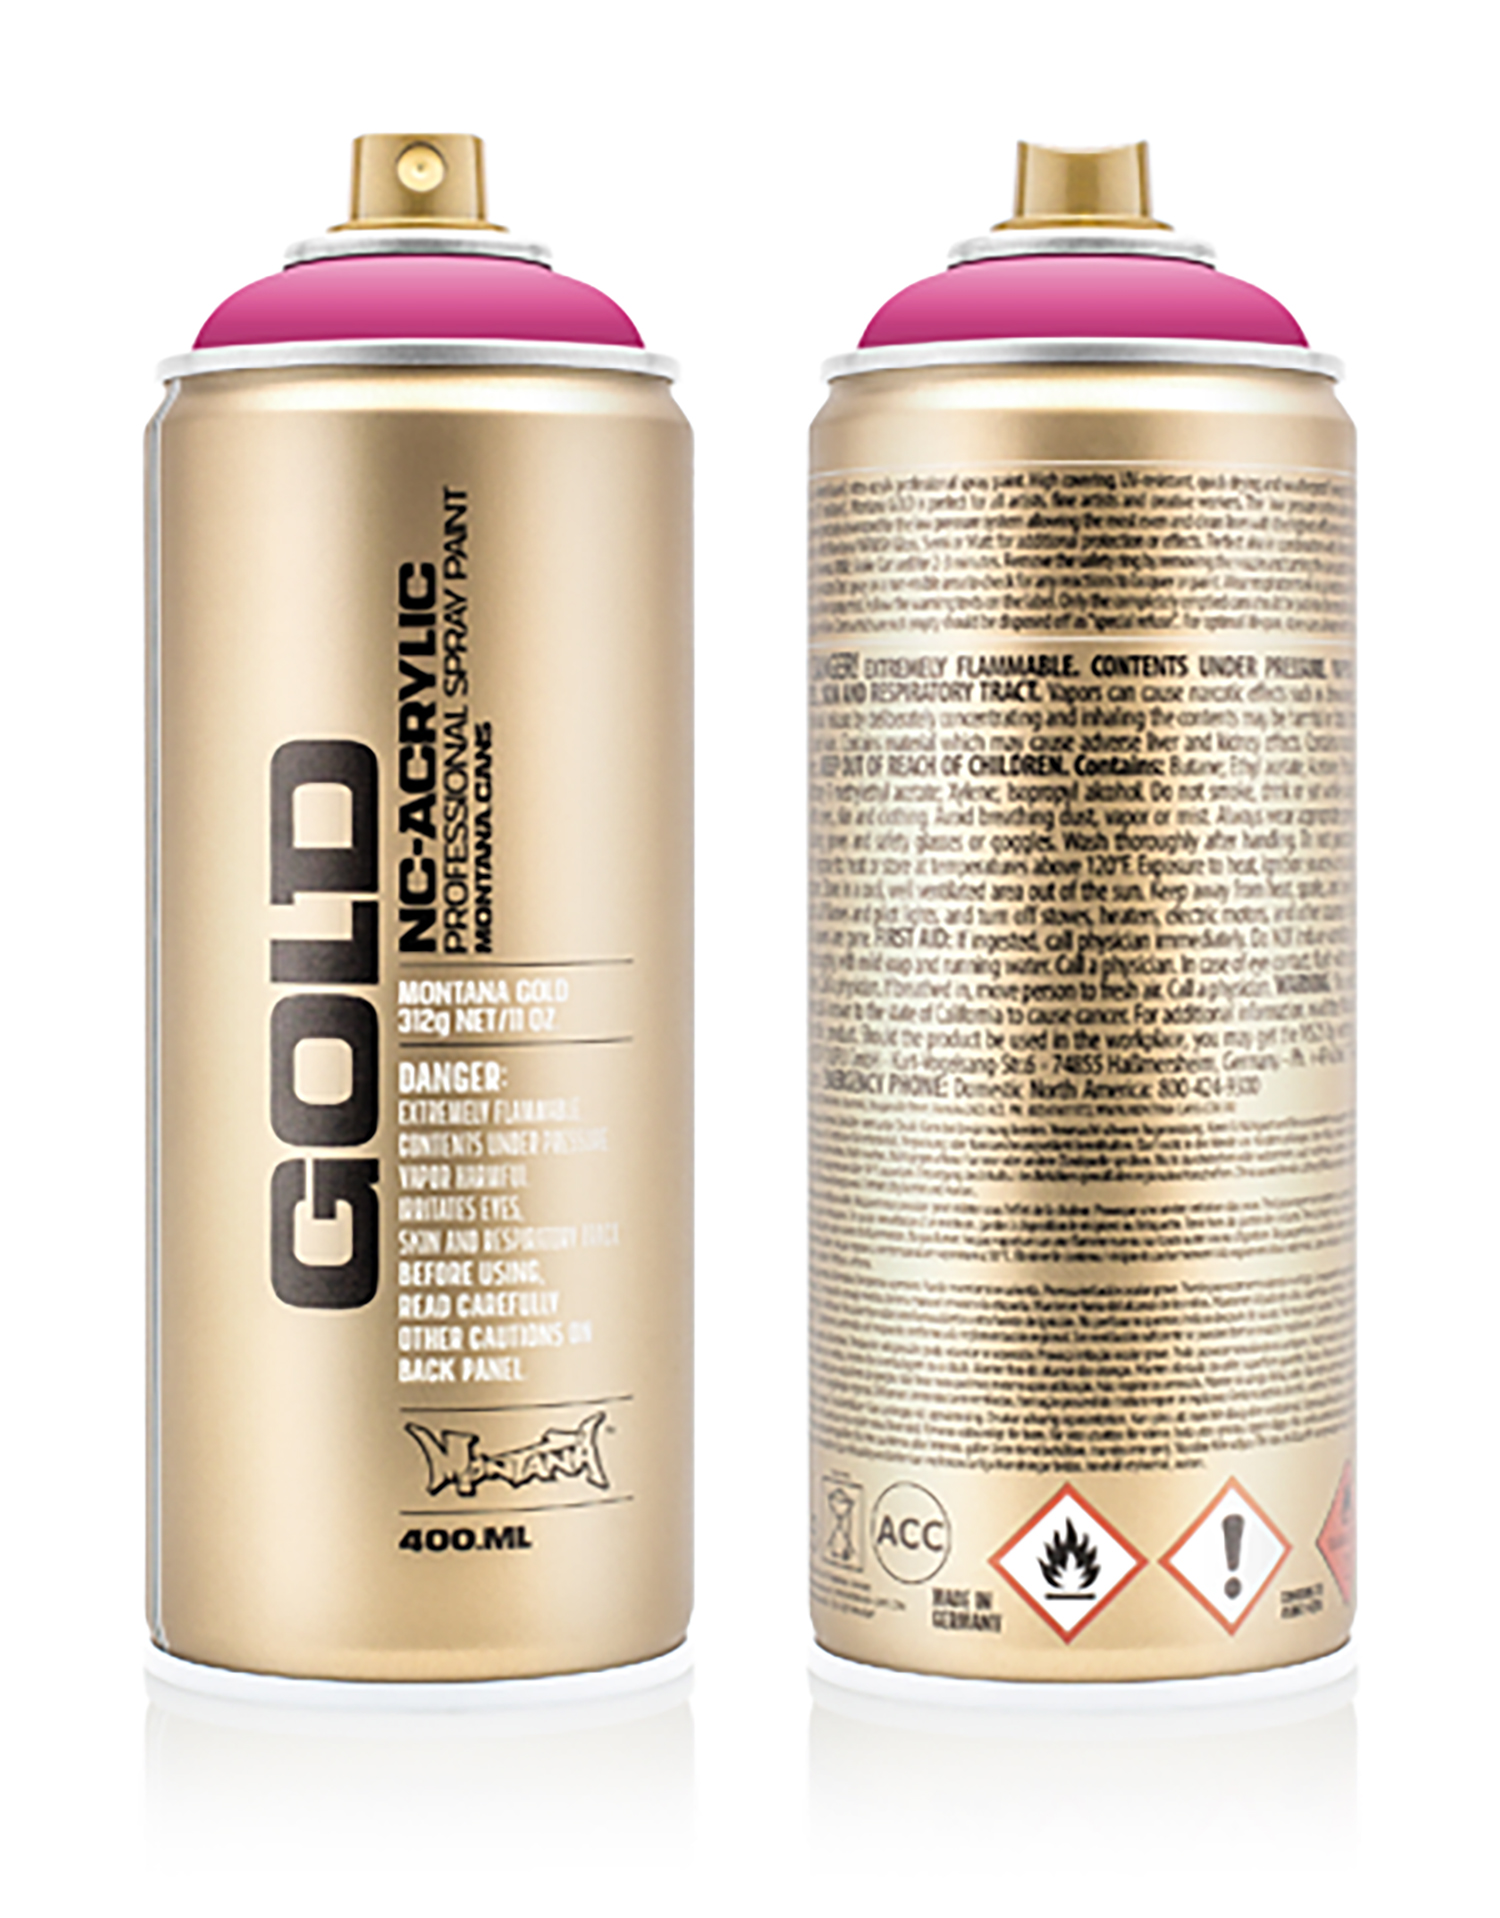 MONTANA-GOLD-SPRAY-400ML-G-3130